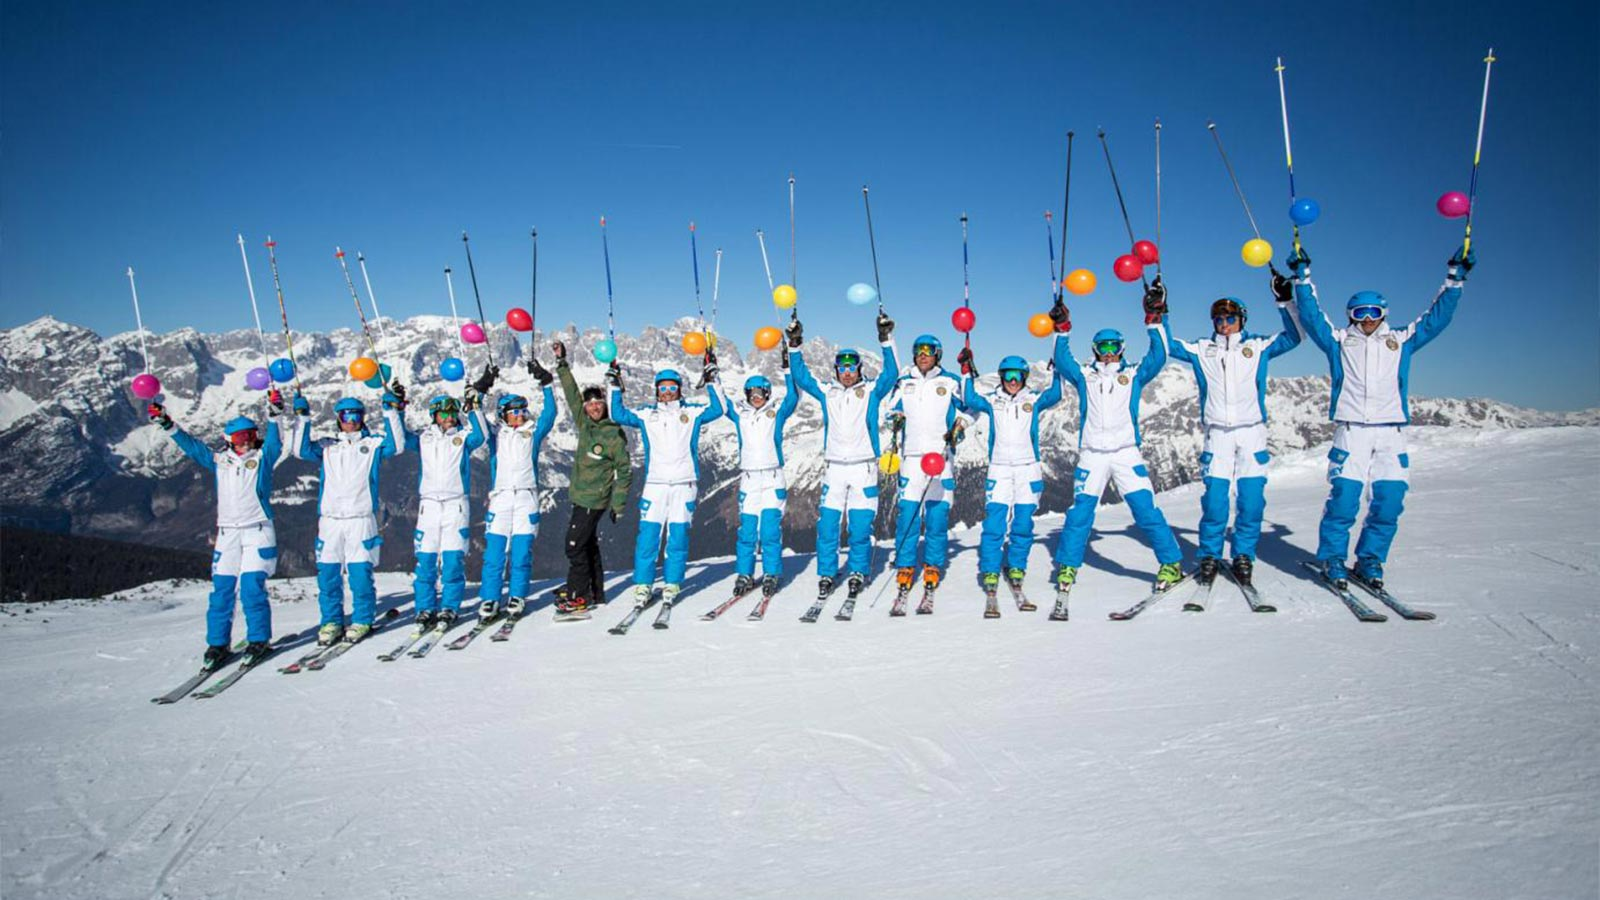 A group of skiers in Andalo in Trentino near Residence Antares